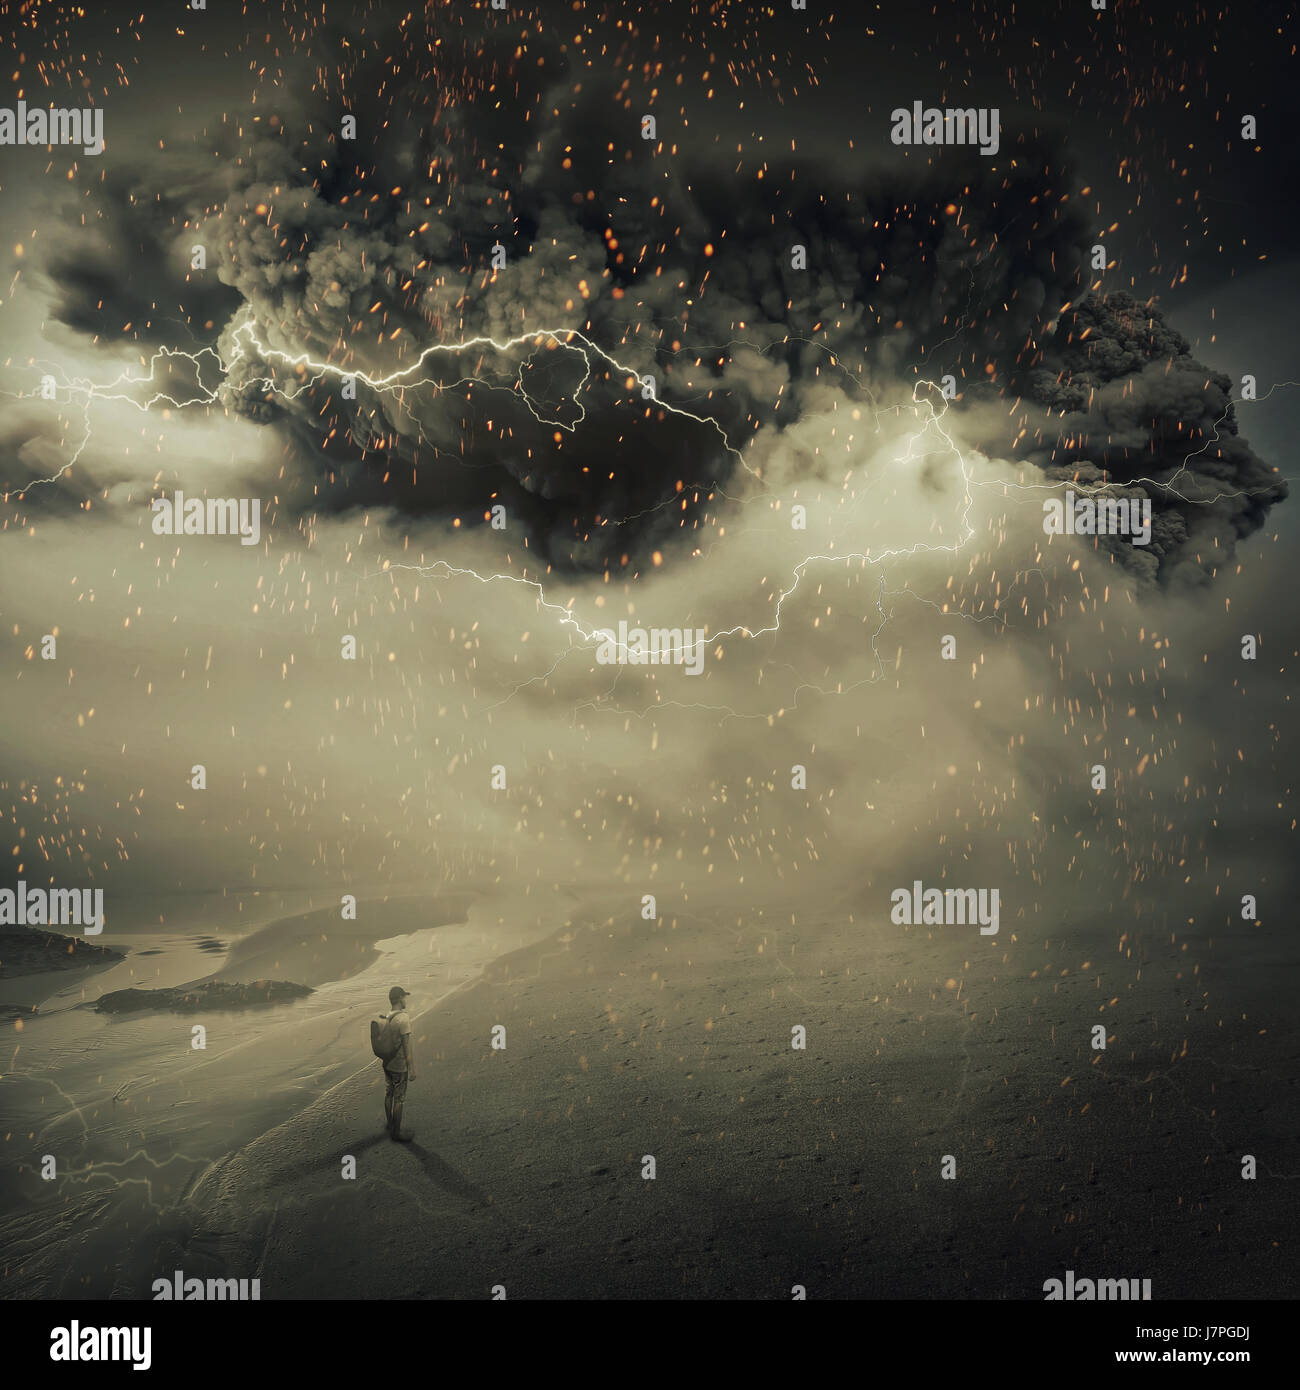 Surreal view as a young boy, stand on the sandy ground near the seaside watching a hurricane, sandstorm coming with - Stock Image